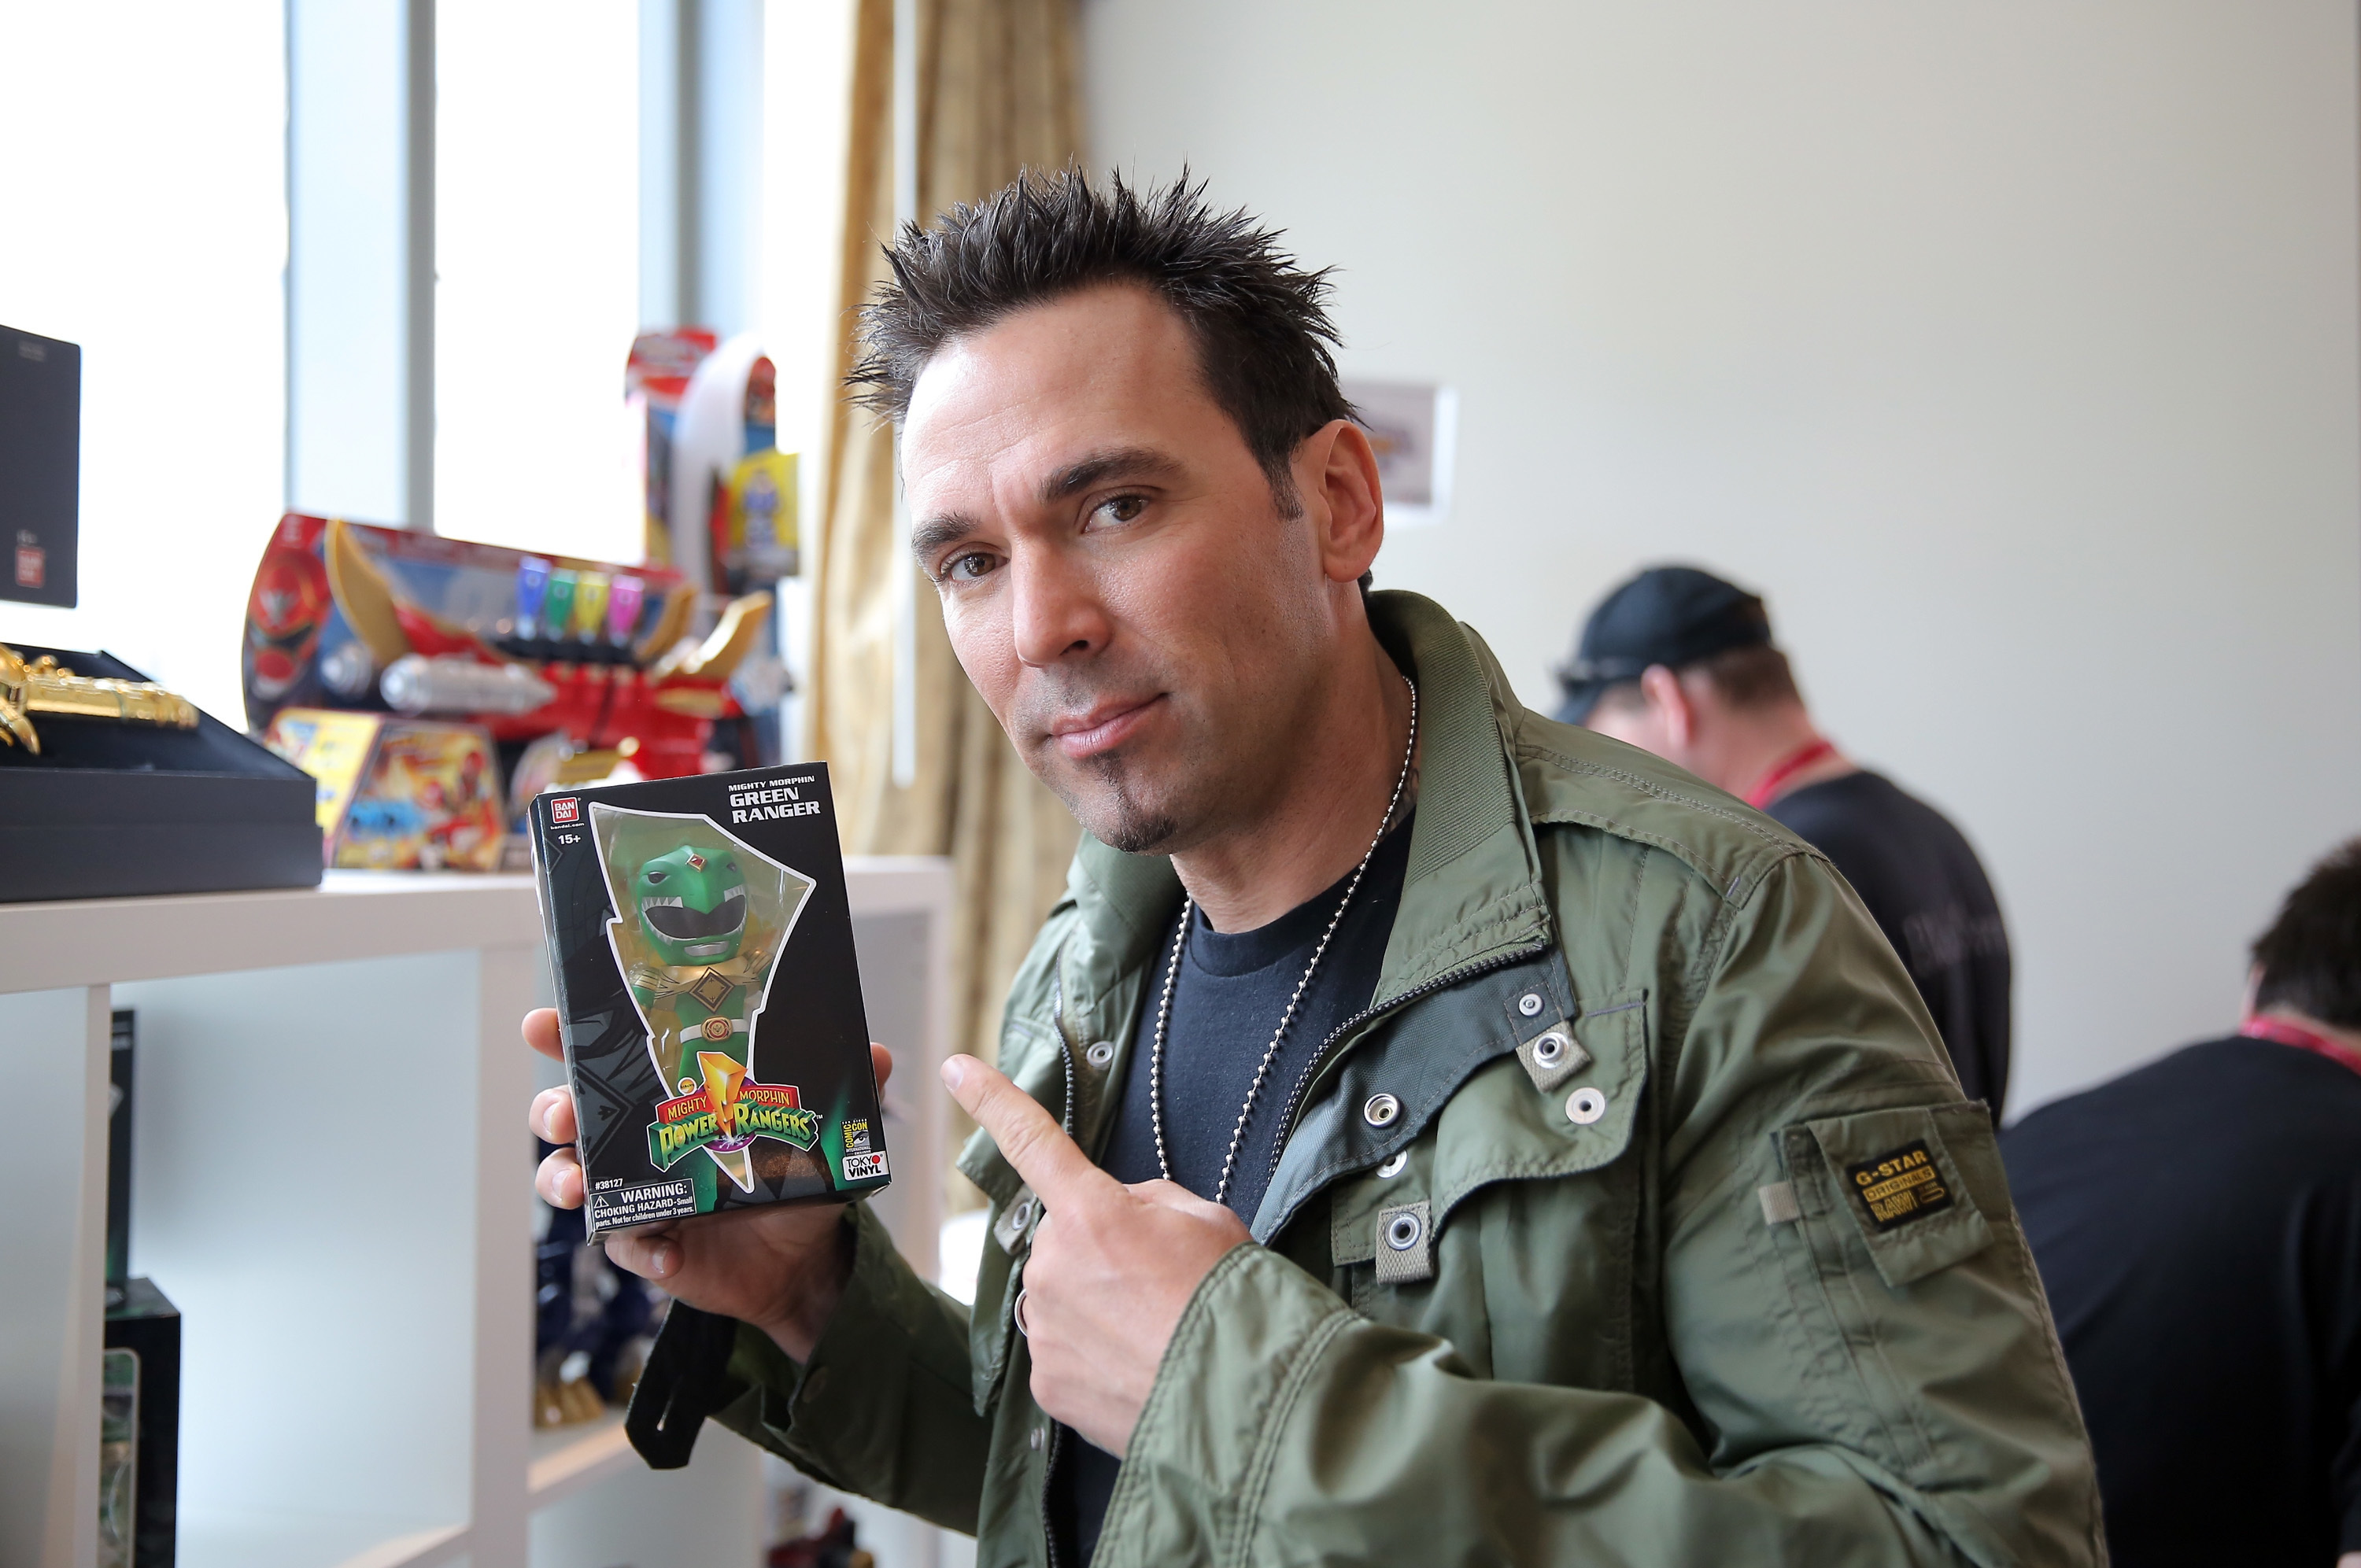 jason david frank native american